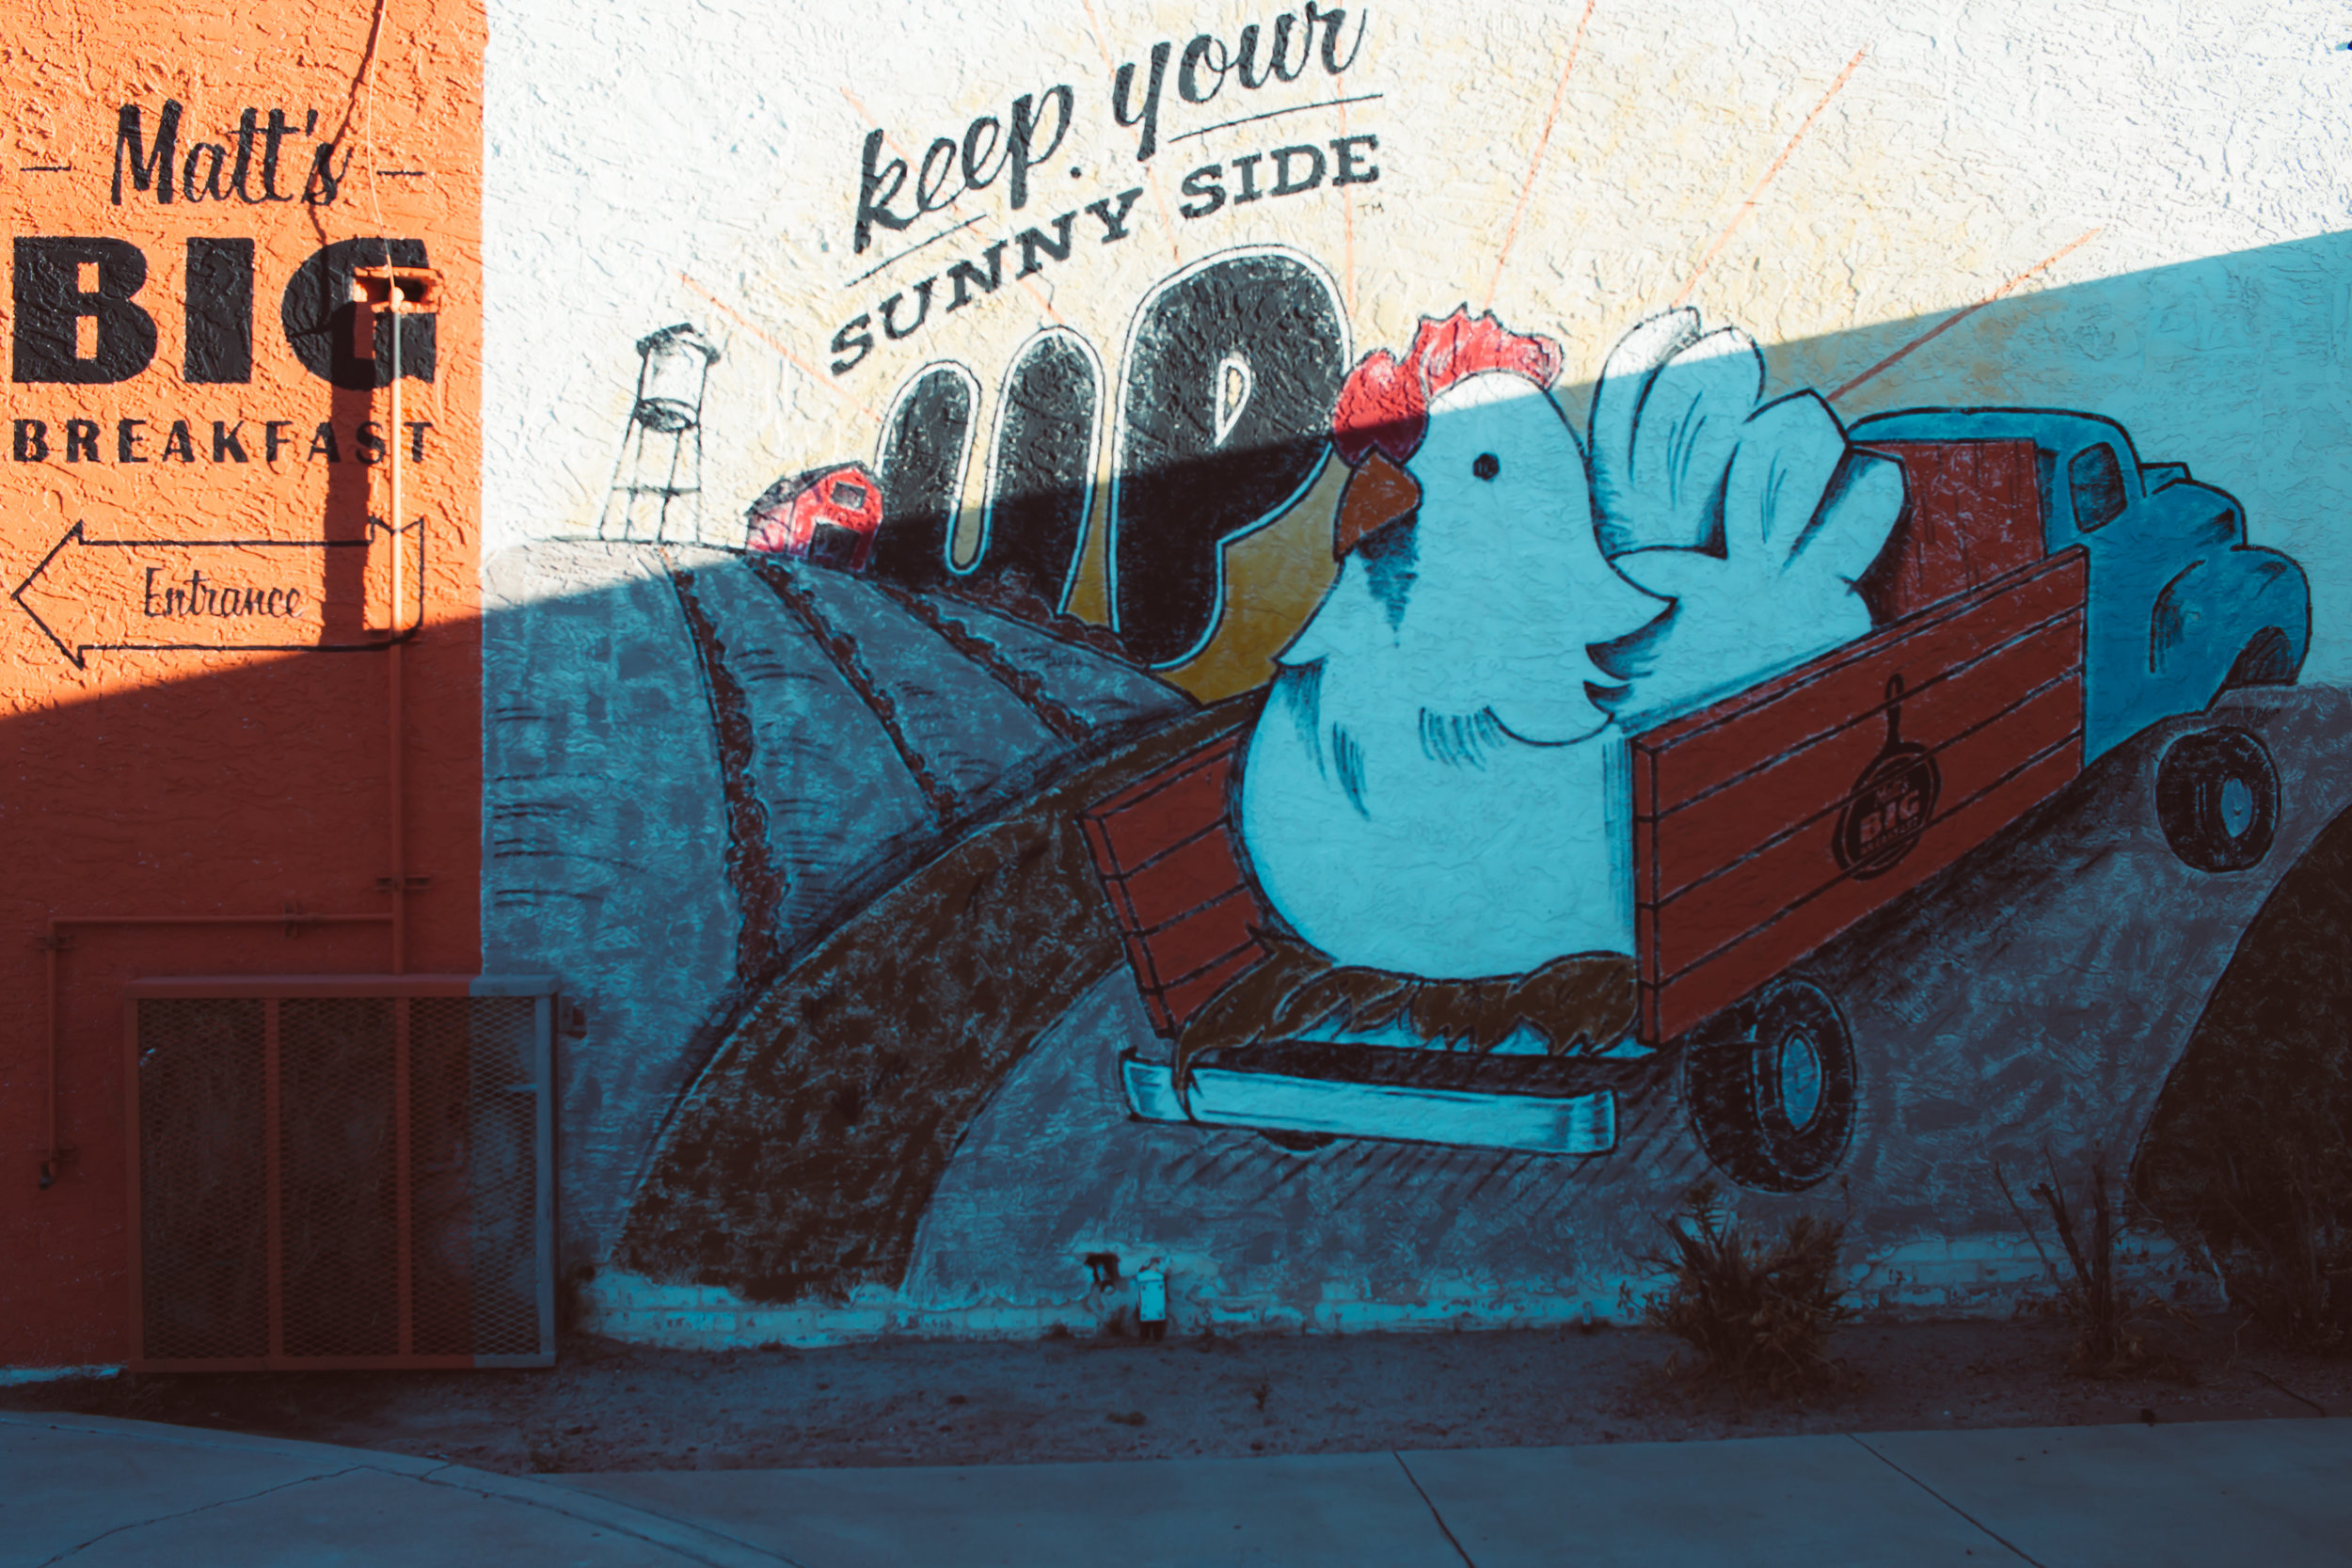 matts-big-breakfast-phoenix-arizona-mural